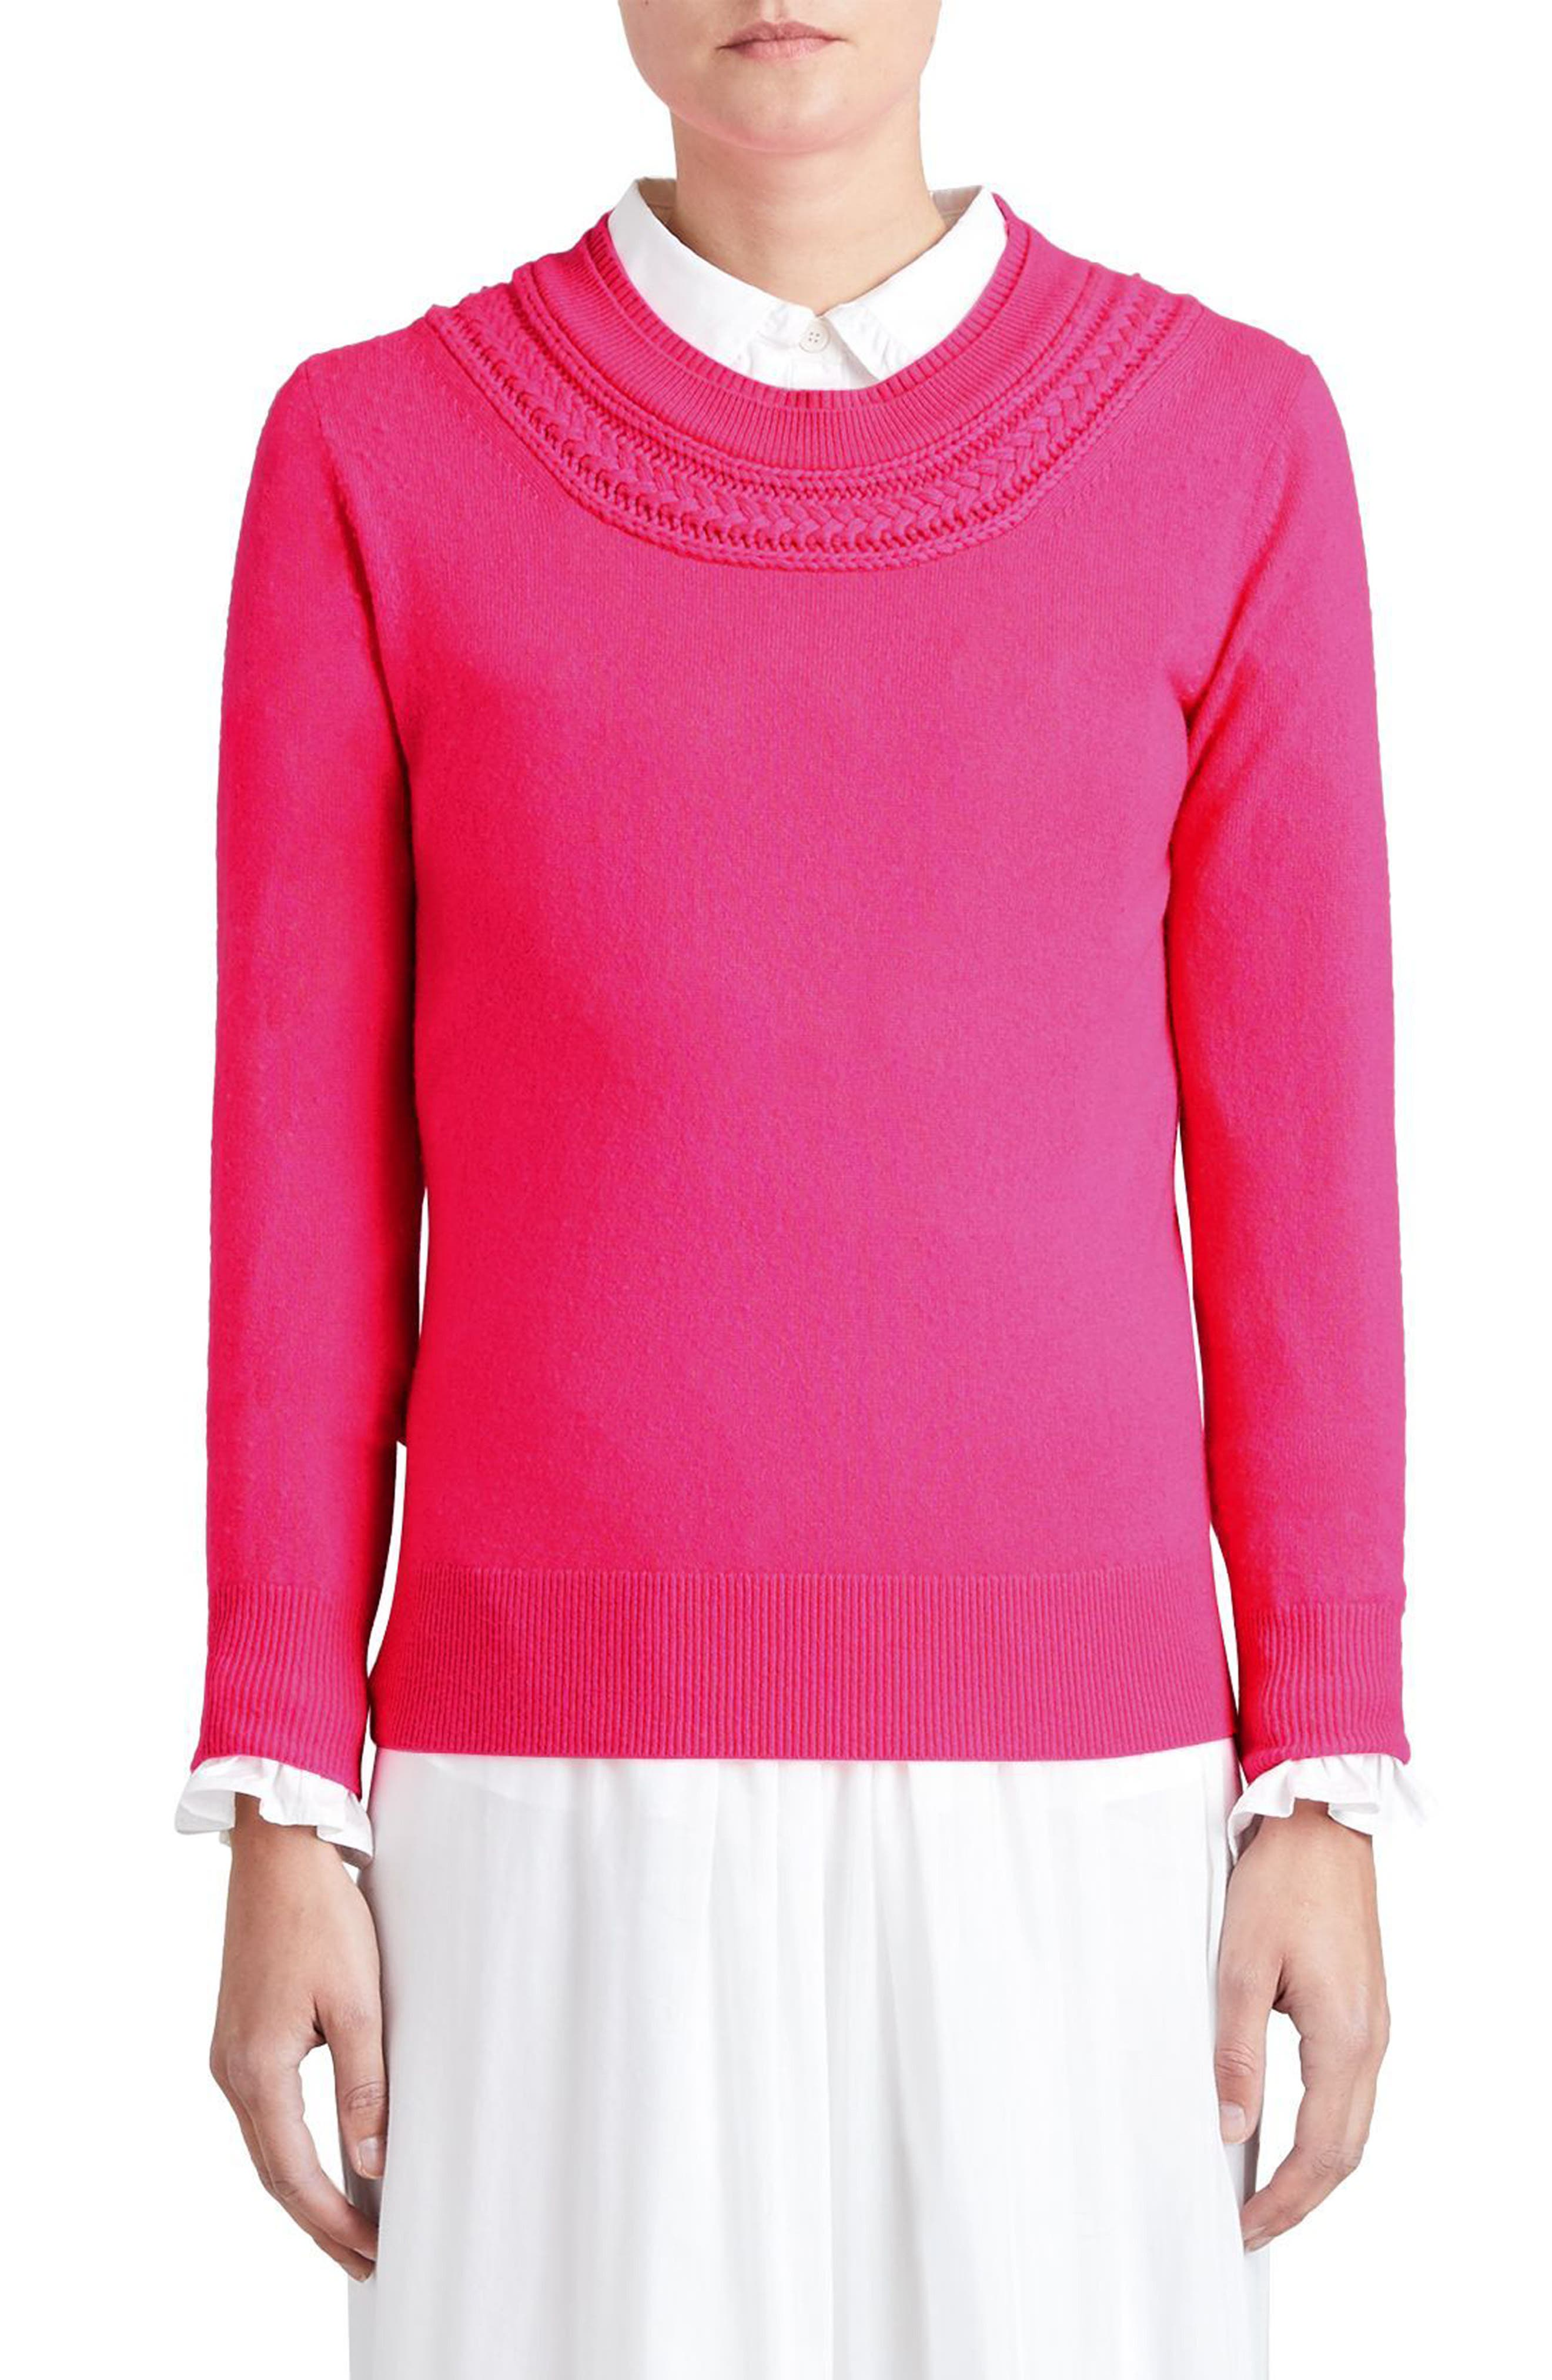 Burberry Guadaira Cashmere Sweater